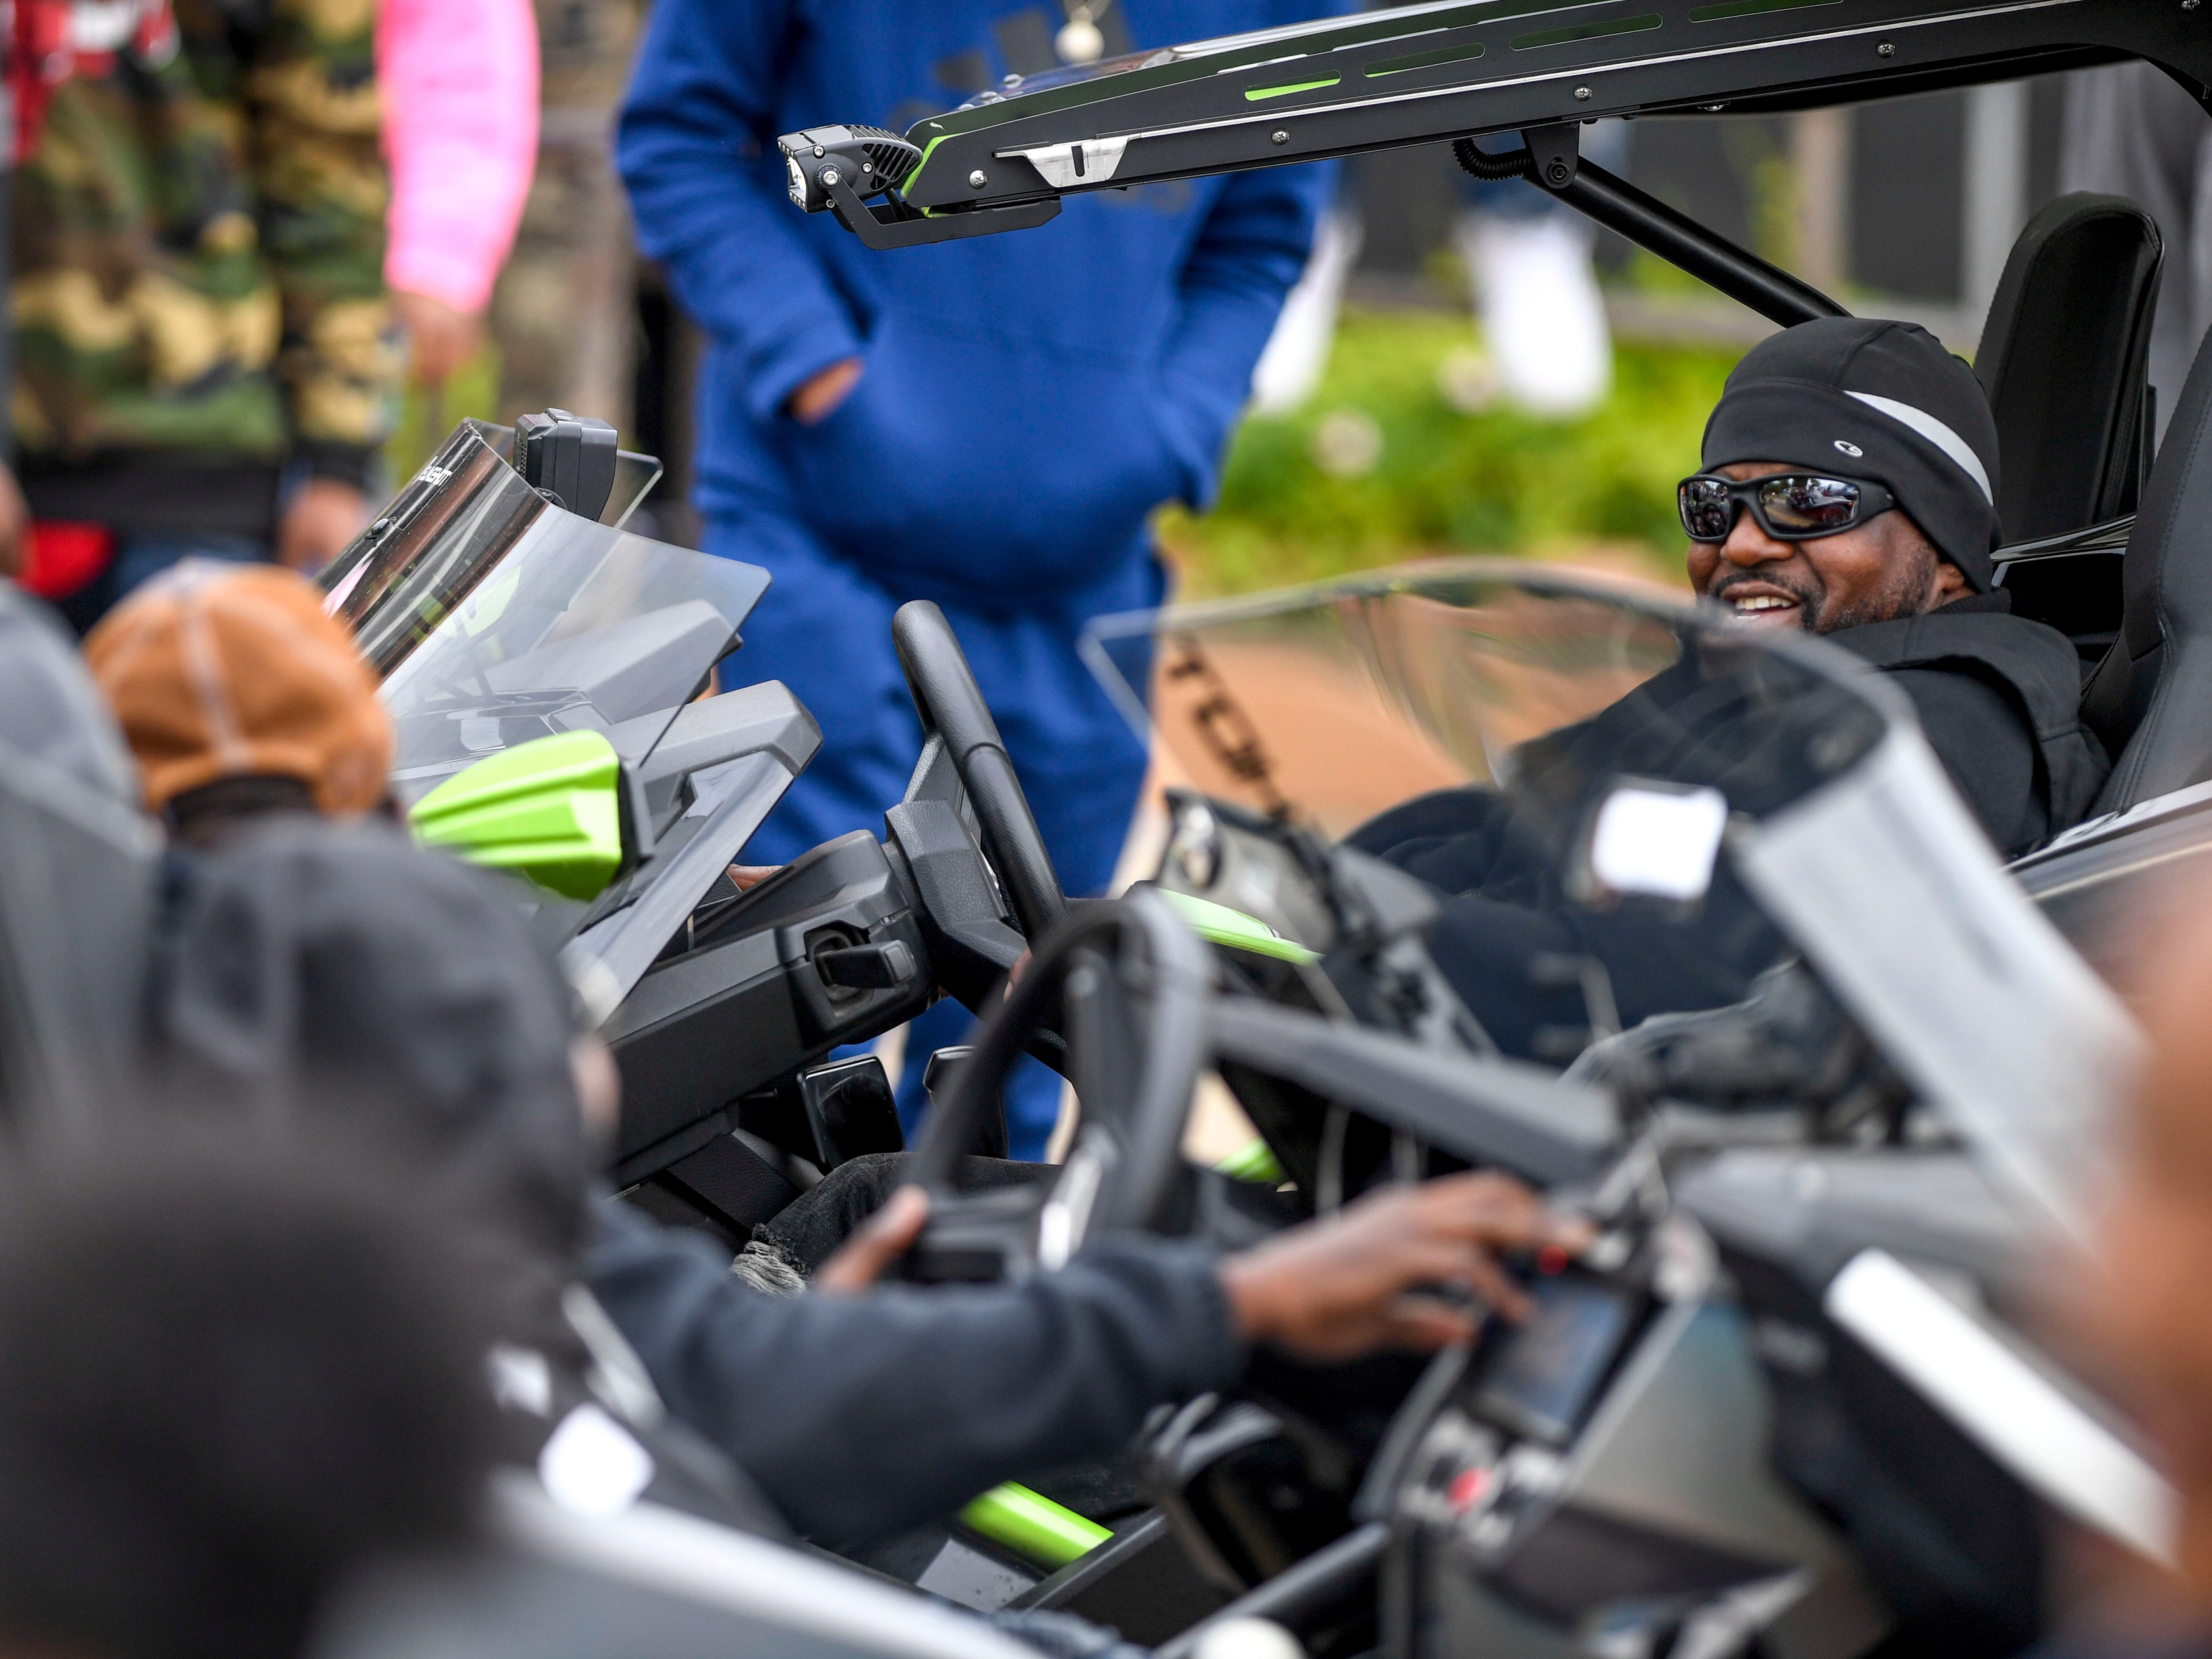 Polaris Slingshot drivers smile and chat as they pass one another at T.R. White Sportsplex in Jackson, Tenn., on Saturday, Oct. 13, 2018.